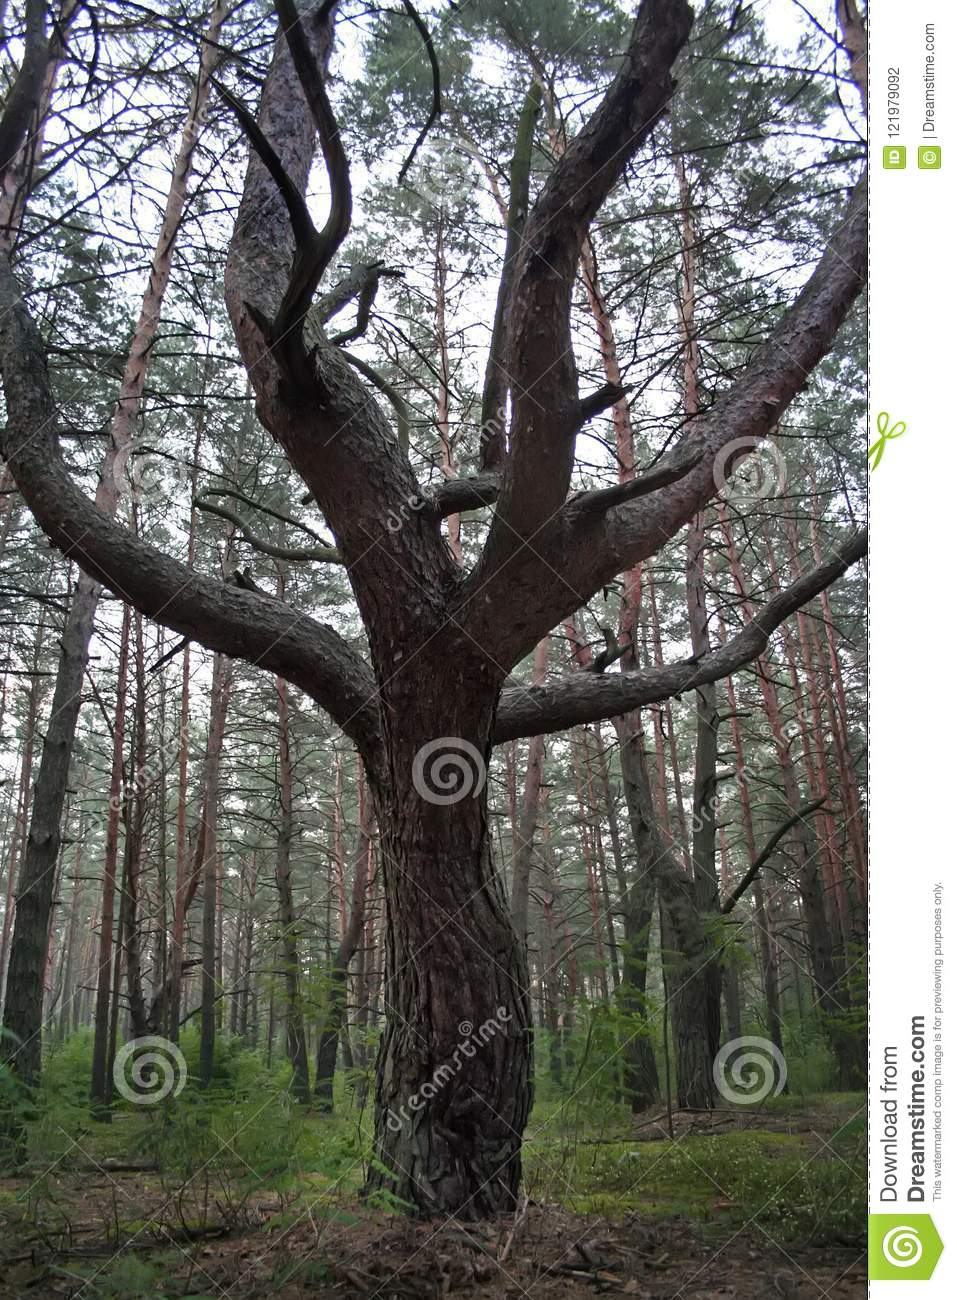 Tree trunk with branching in the forest